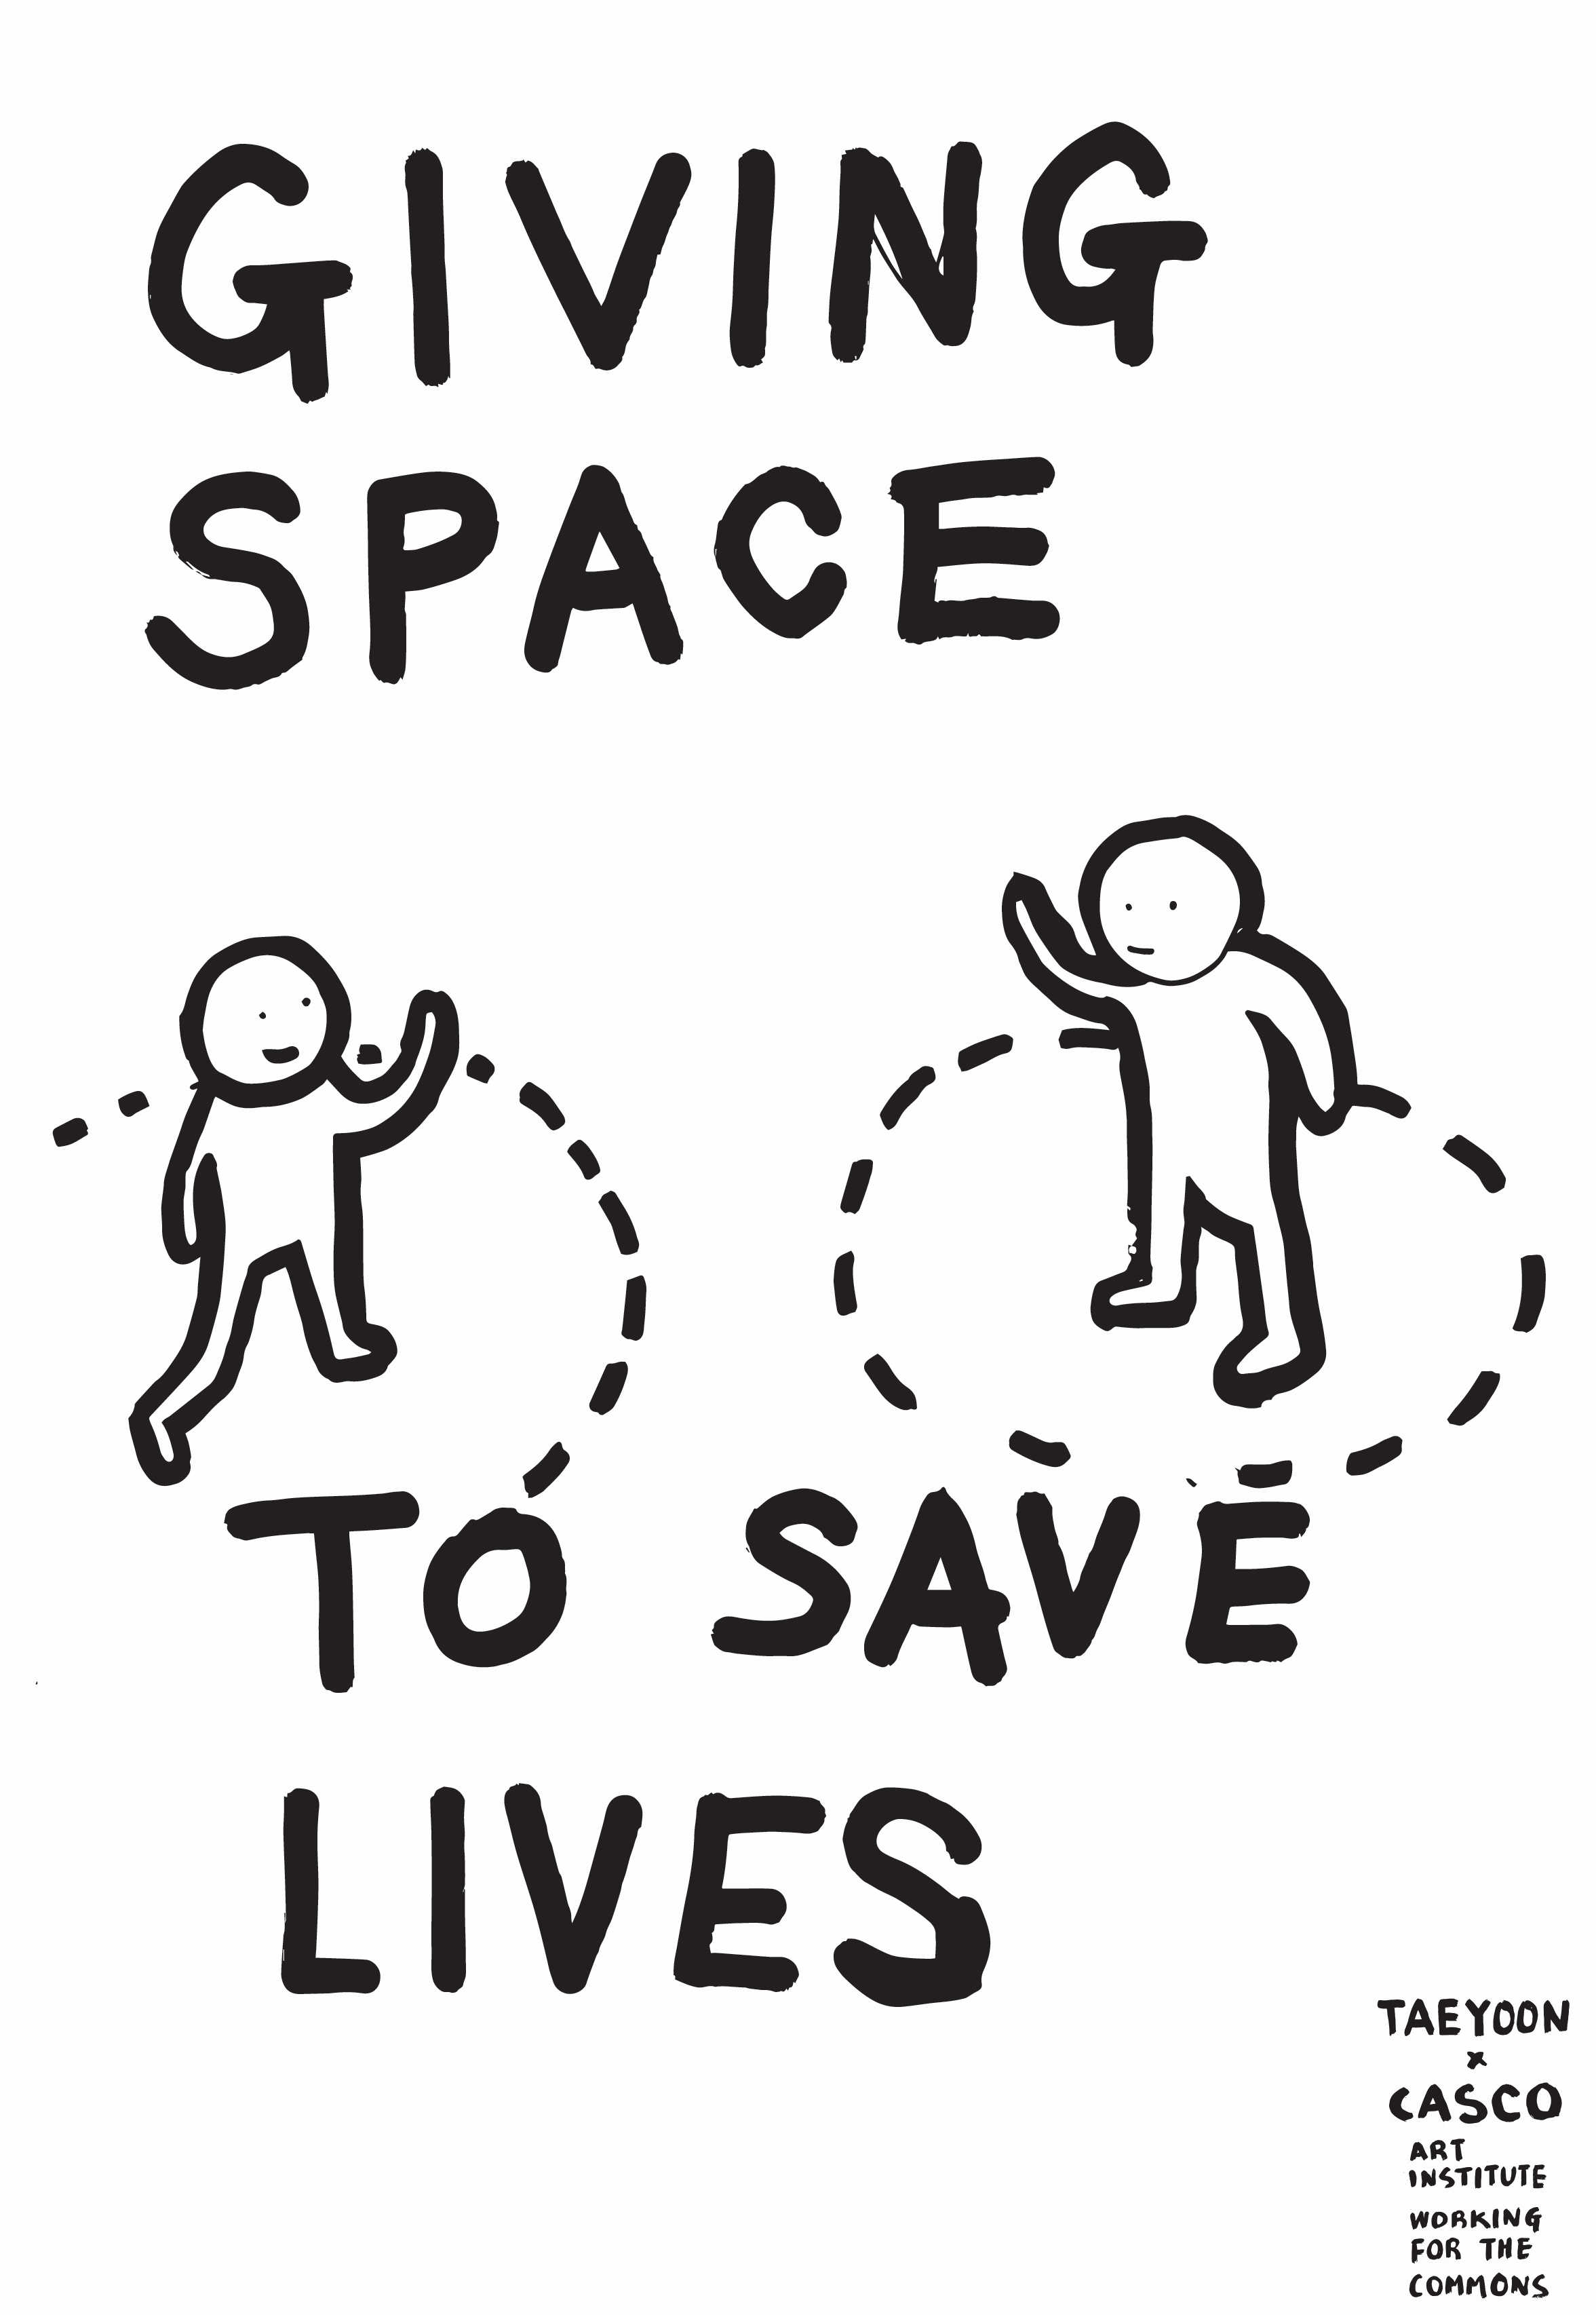 Giving Space To Safe Lives